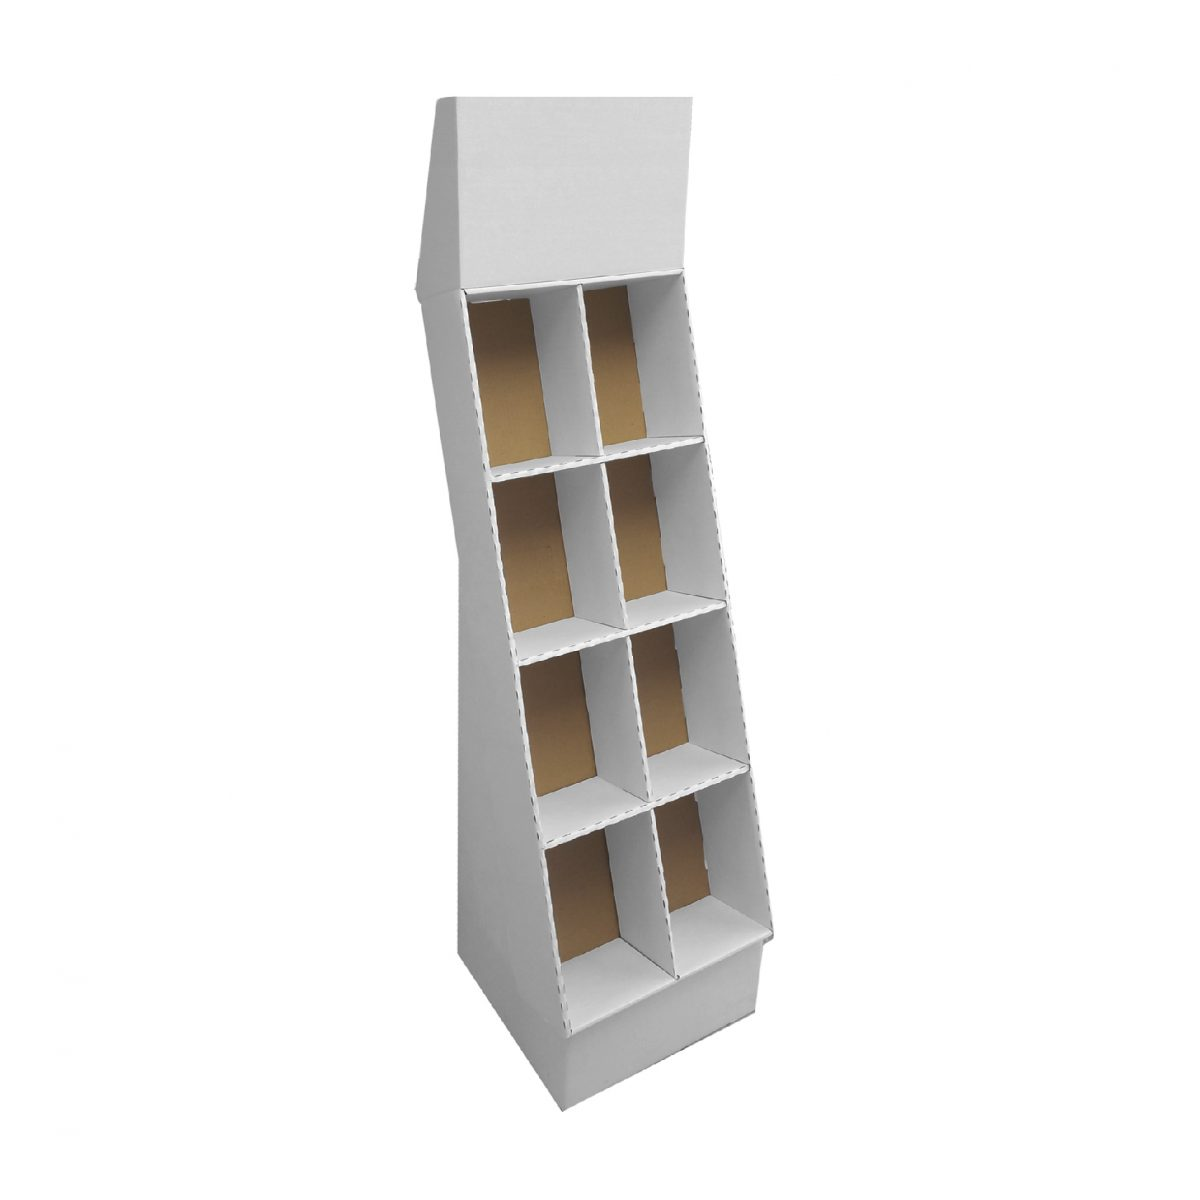 Cardboard floor display with header and 4 shelves, with a separator, placed on a small base - white